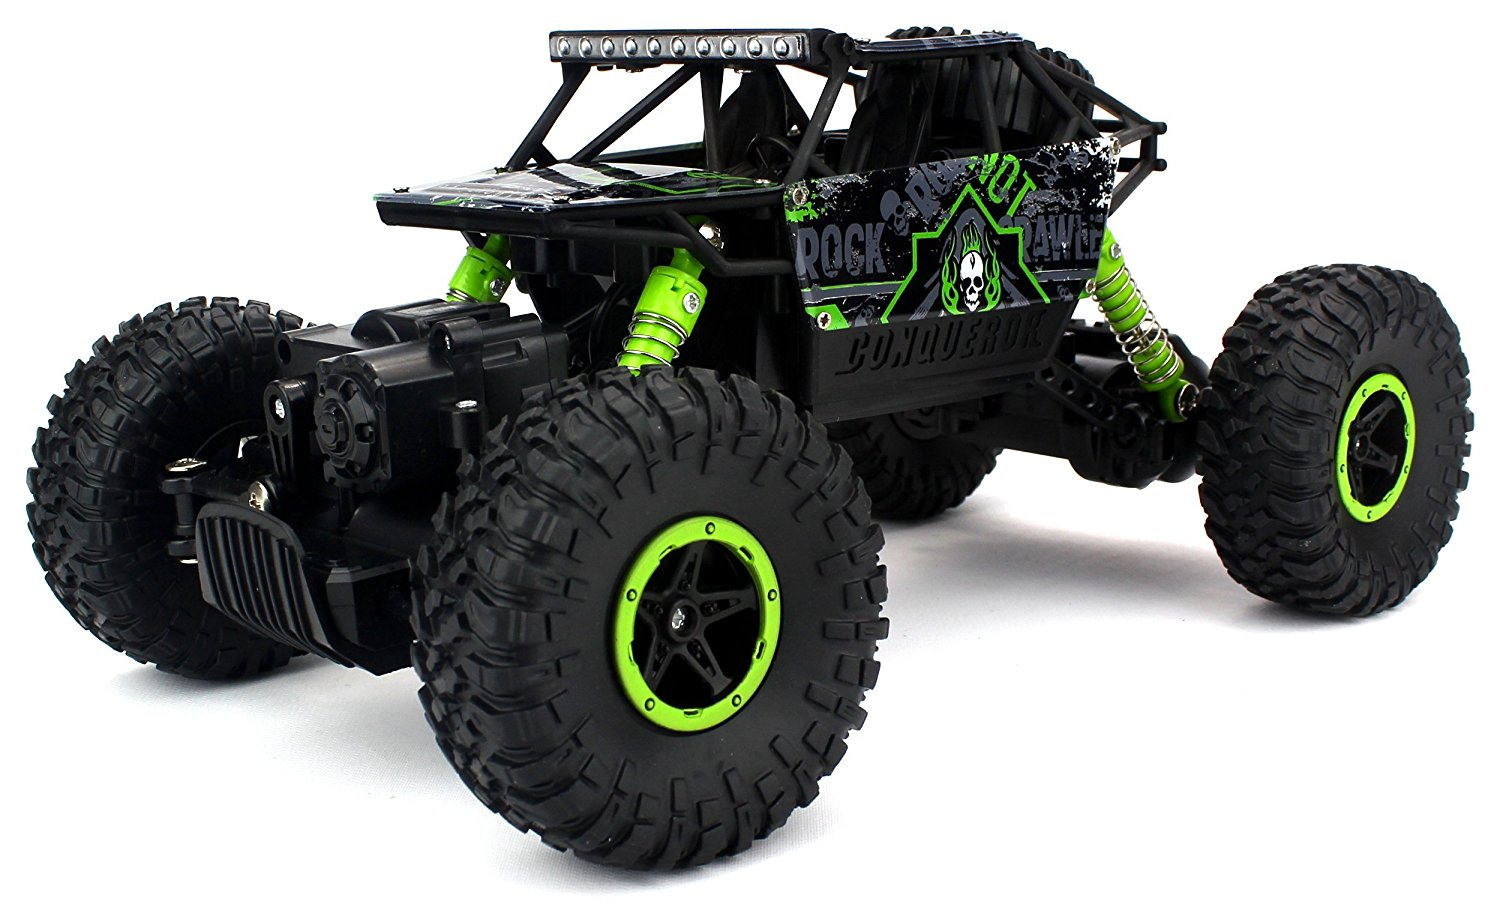 Velocity Toys Rock Crawler Remote Control RC High Performance Truck 2.4 GHz Control System... by Velocity Toys